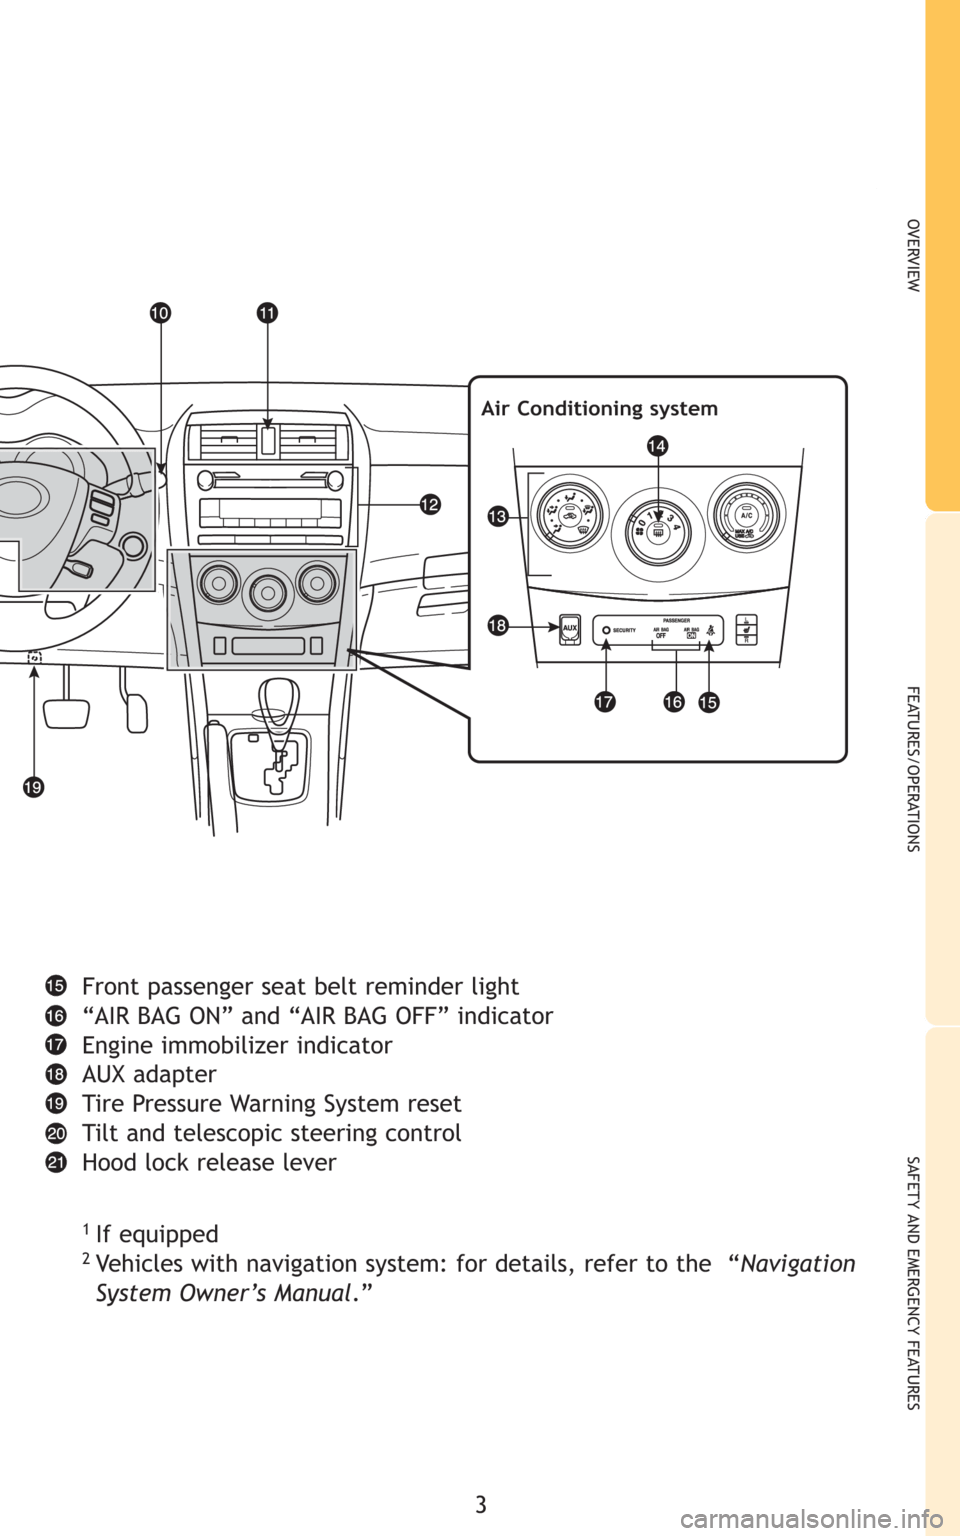 TOYOTA COROLLA 2009 10.G Quick Reference Guide